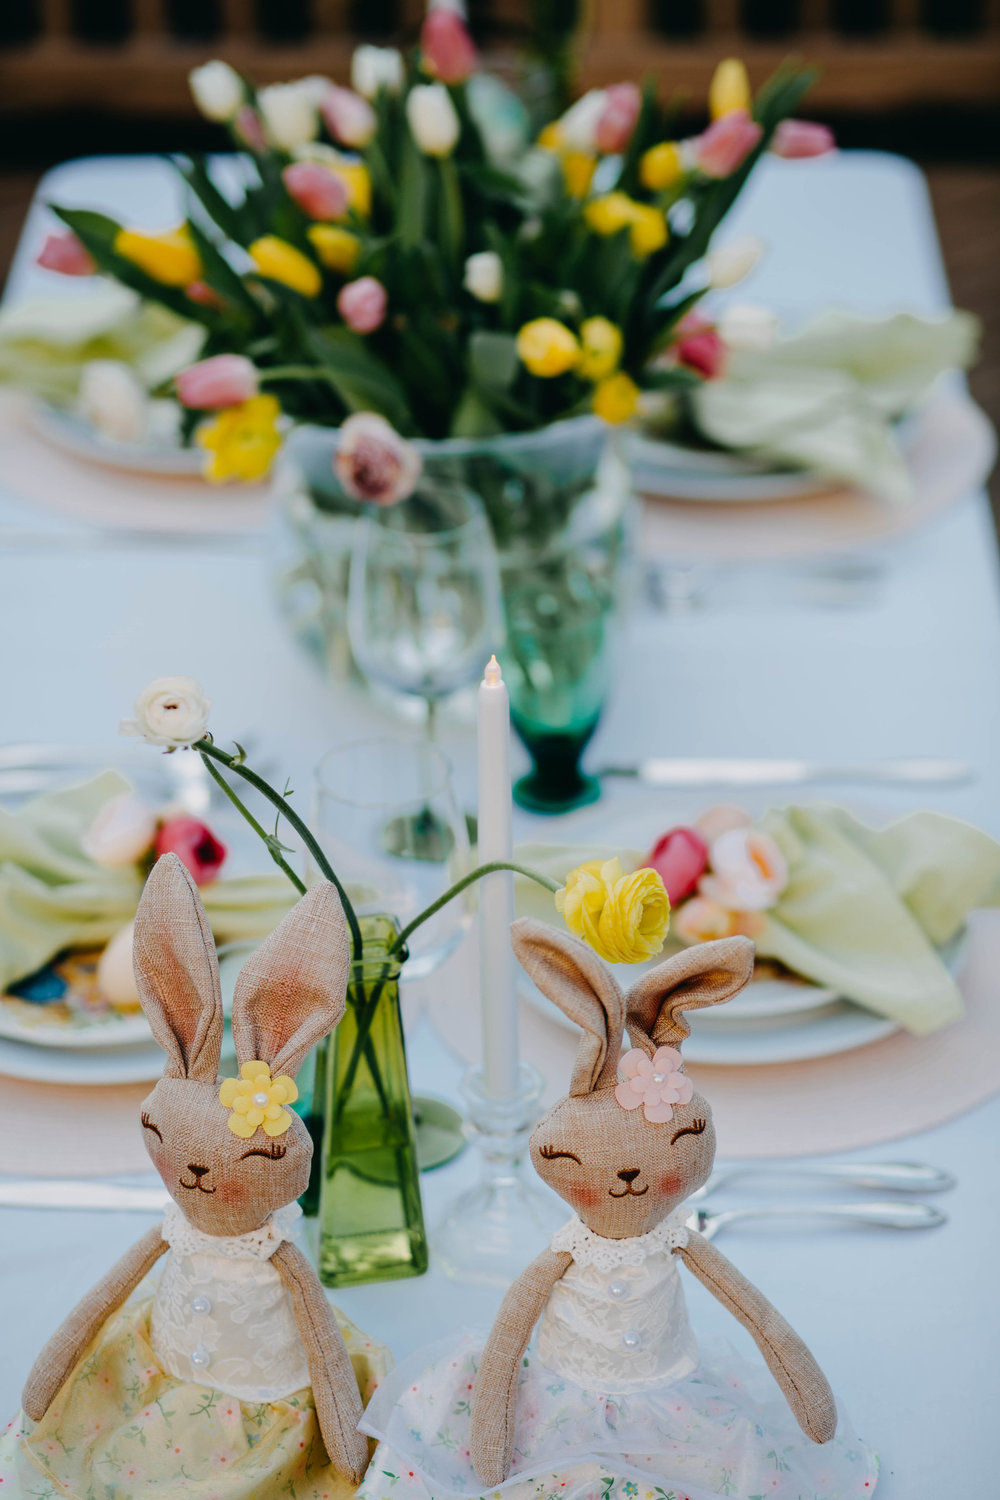 Beautiful Easter table decorations centerpieces